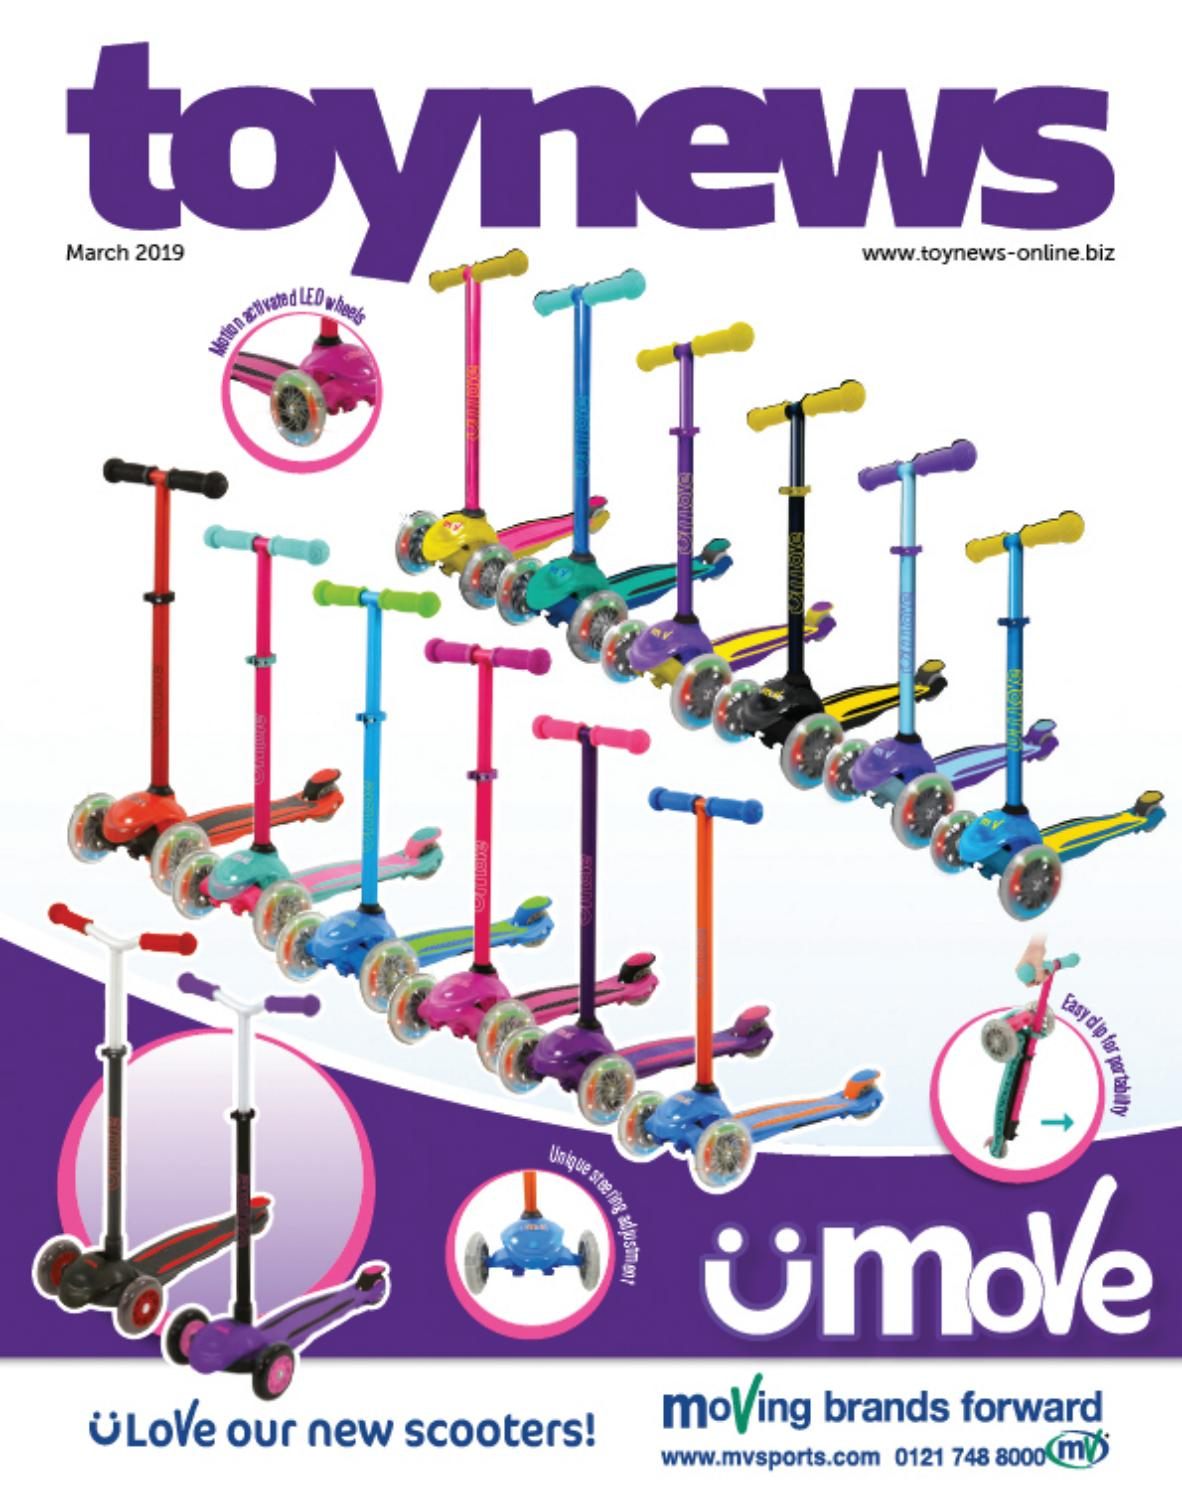 Toynews march 2019 by biz media ltd issuu